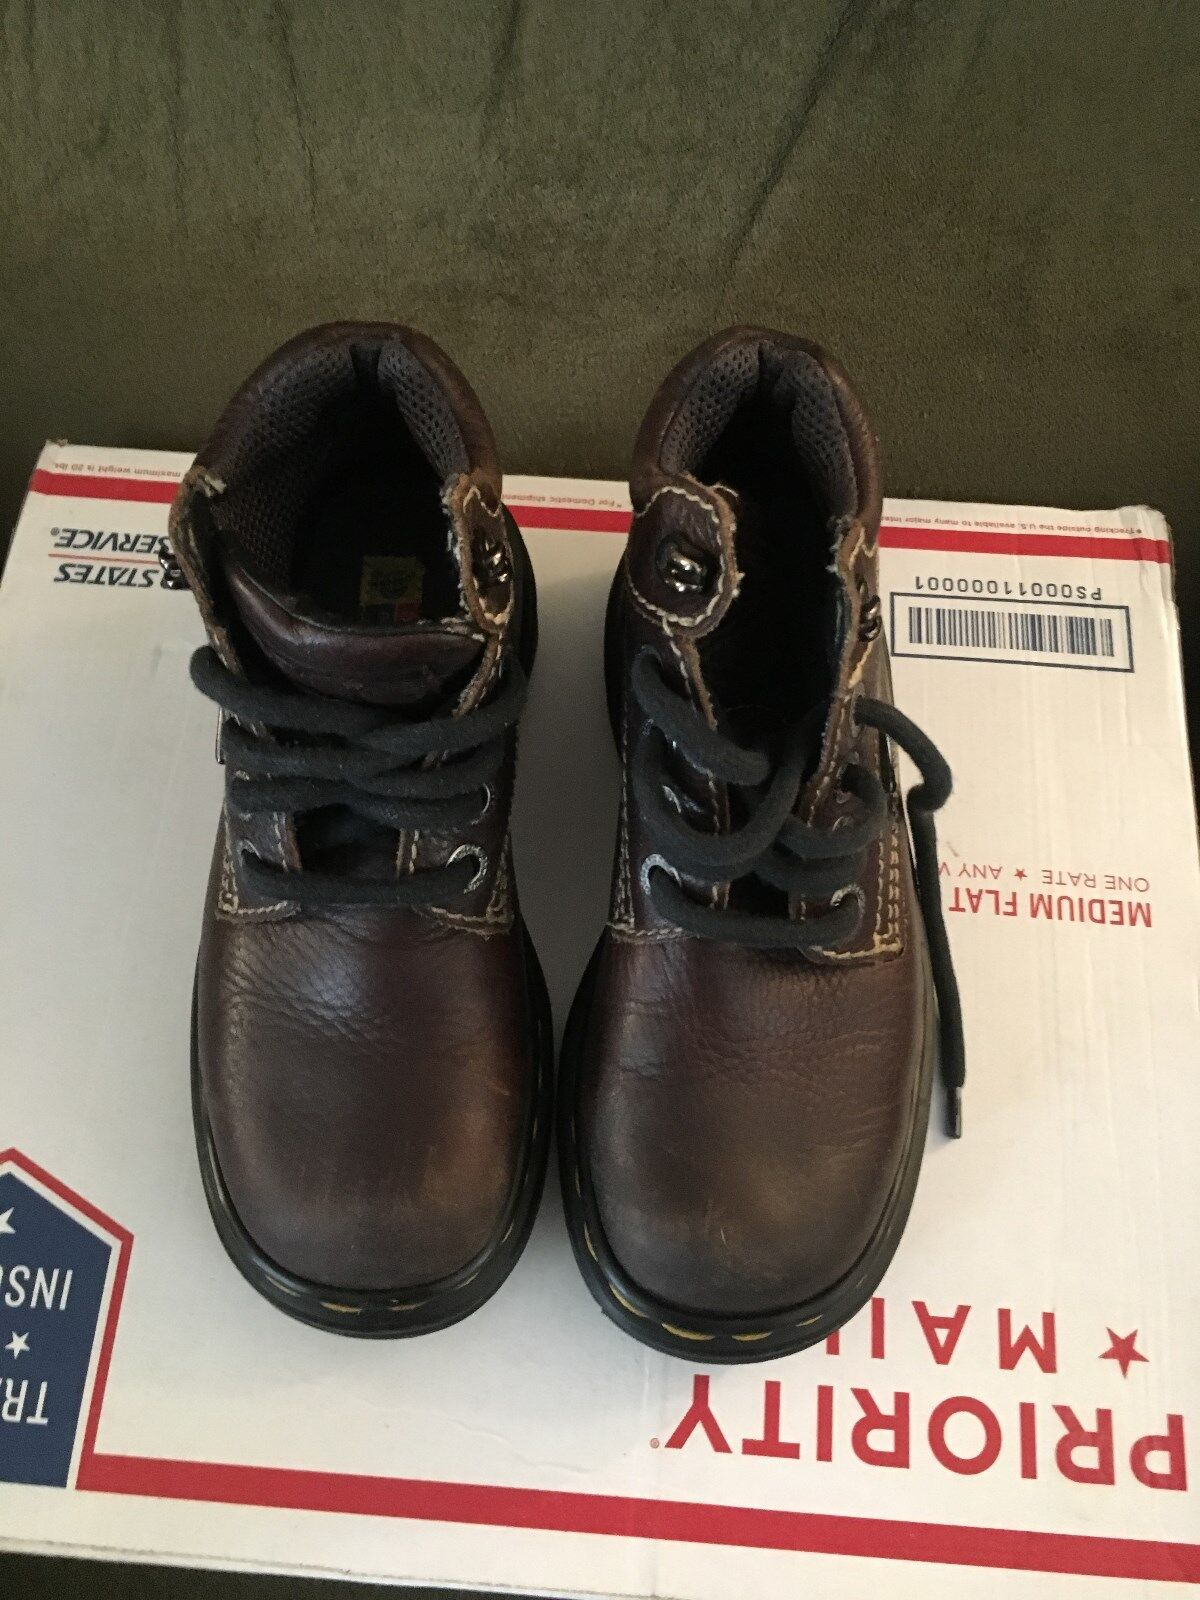 Vintage Dr. Marten condition bootsyouth size 13,in excellent condition Marten 3f2b77